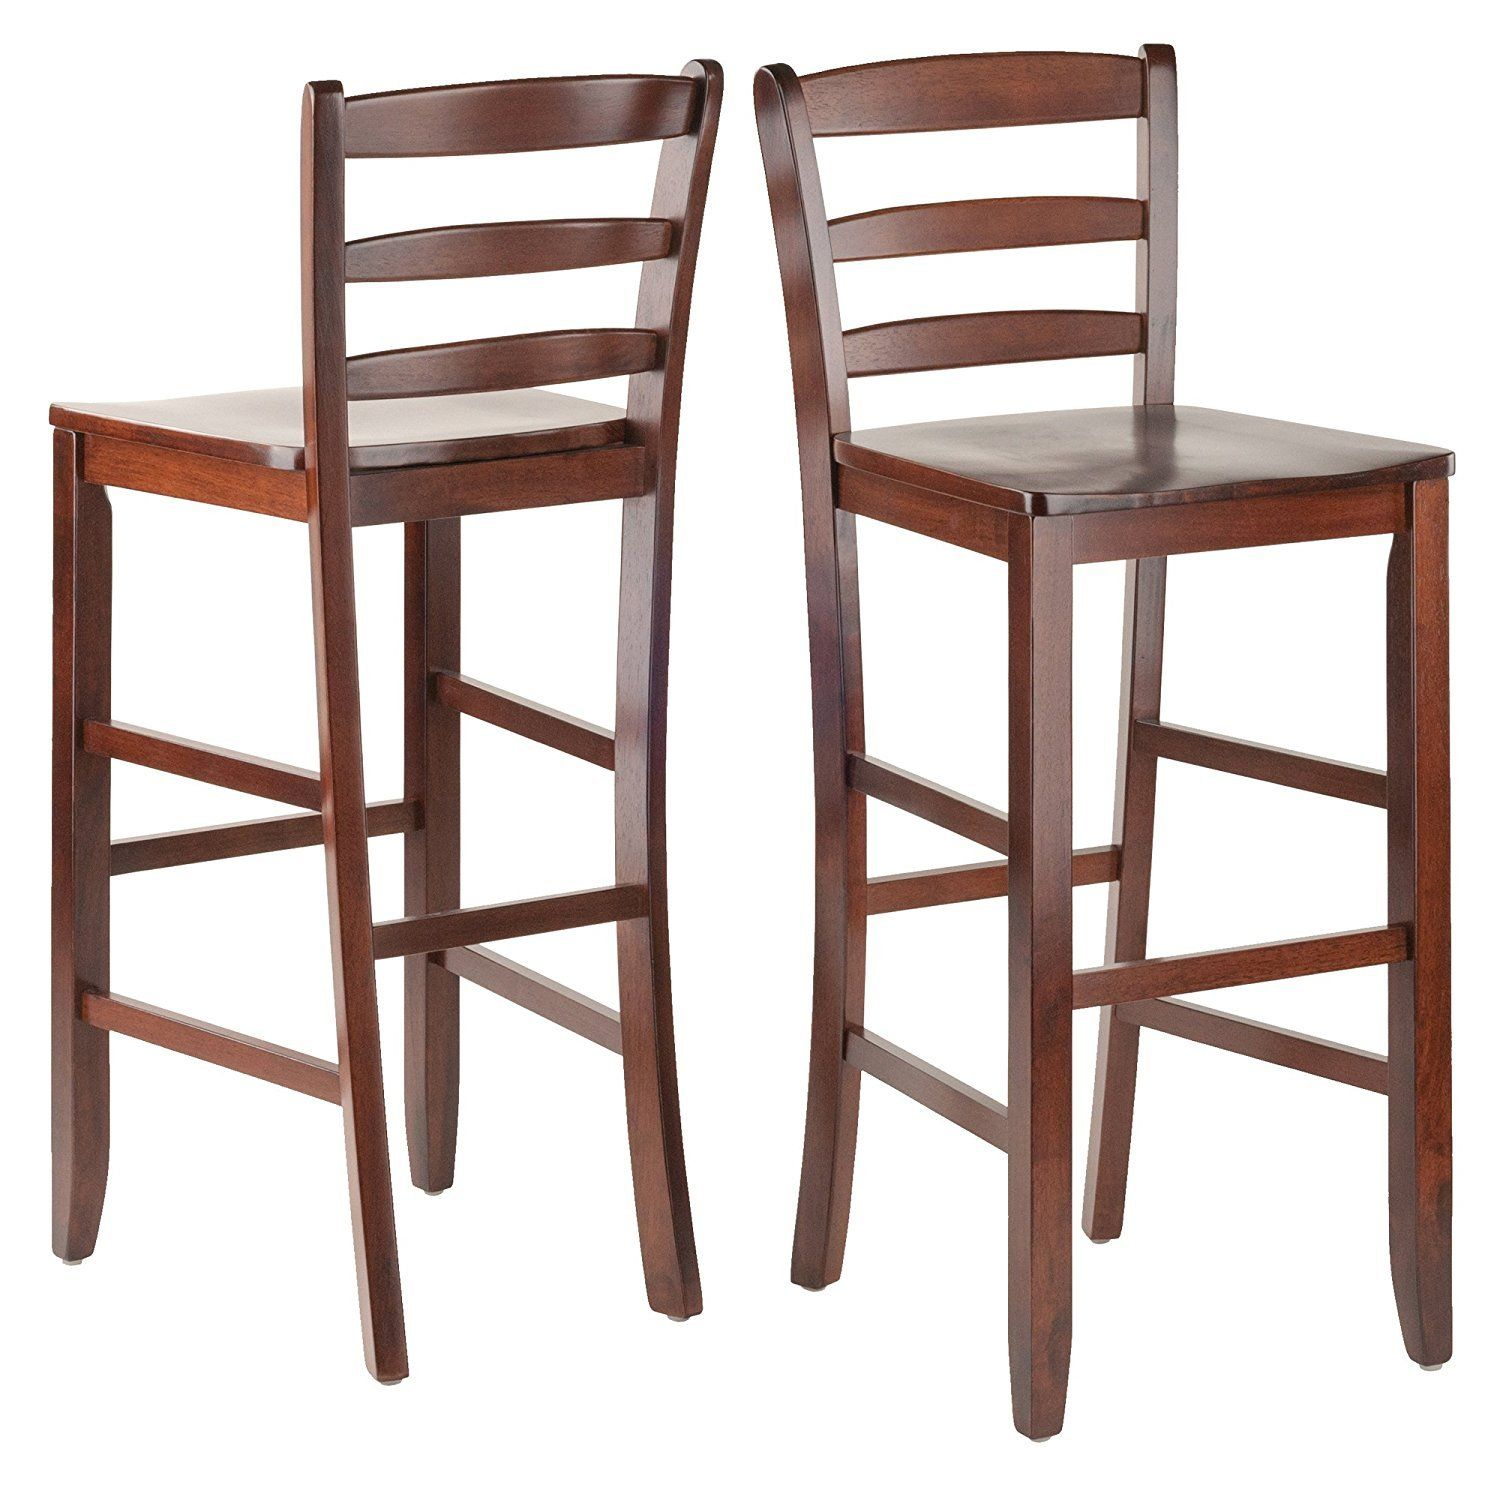 Peachy Winsome Wood 94249 Set Of 2 29 Bar Ladder Back Stool In Caraccident5 Cool Chair Designs And Ideas Caraccident5Info